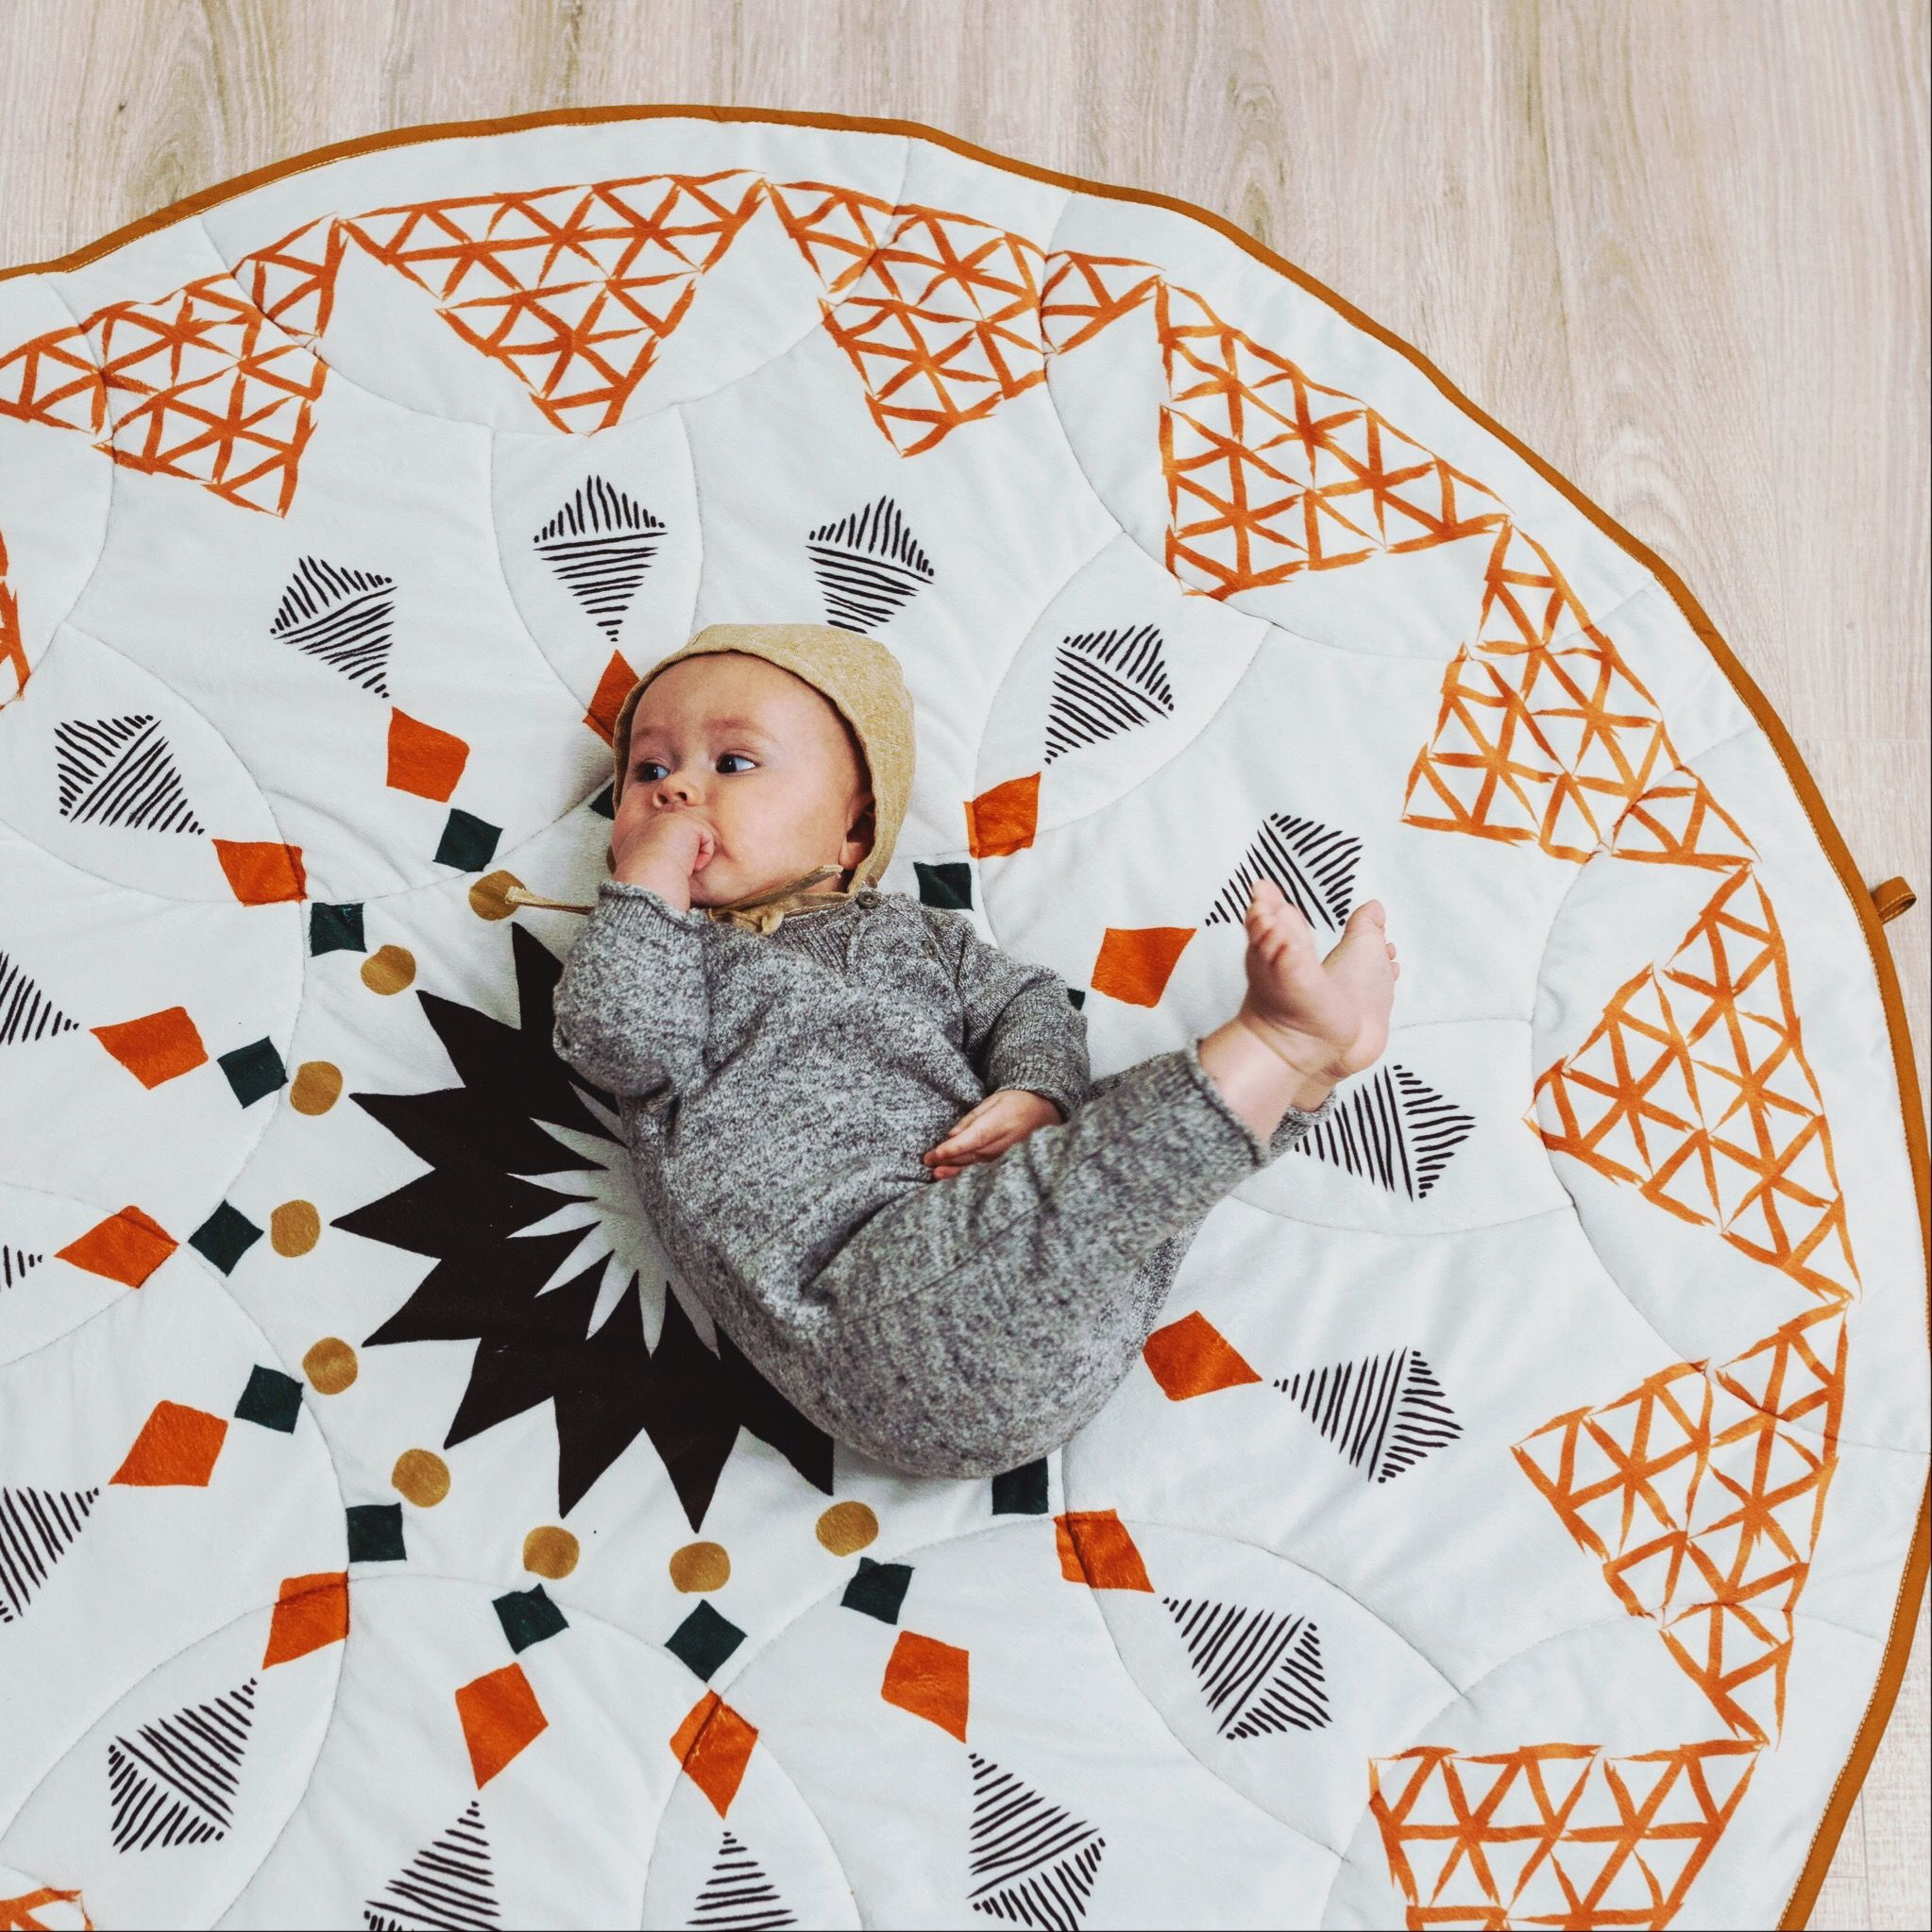 Padded Quilted Baby Play Mat Floor Rug Tummy Time Baby Shower Gift Nursery Decor